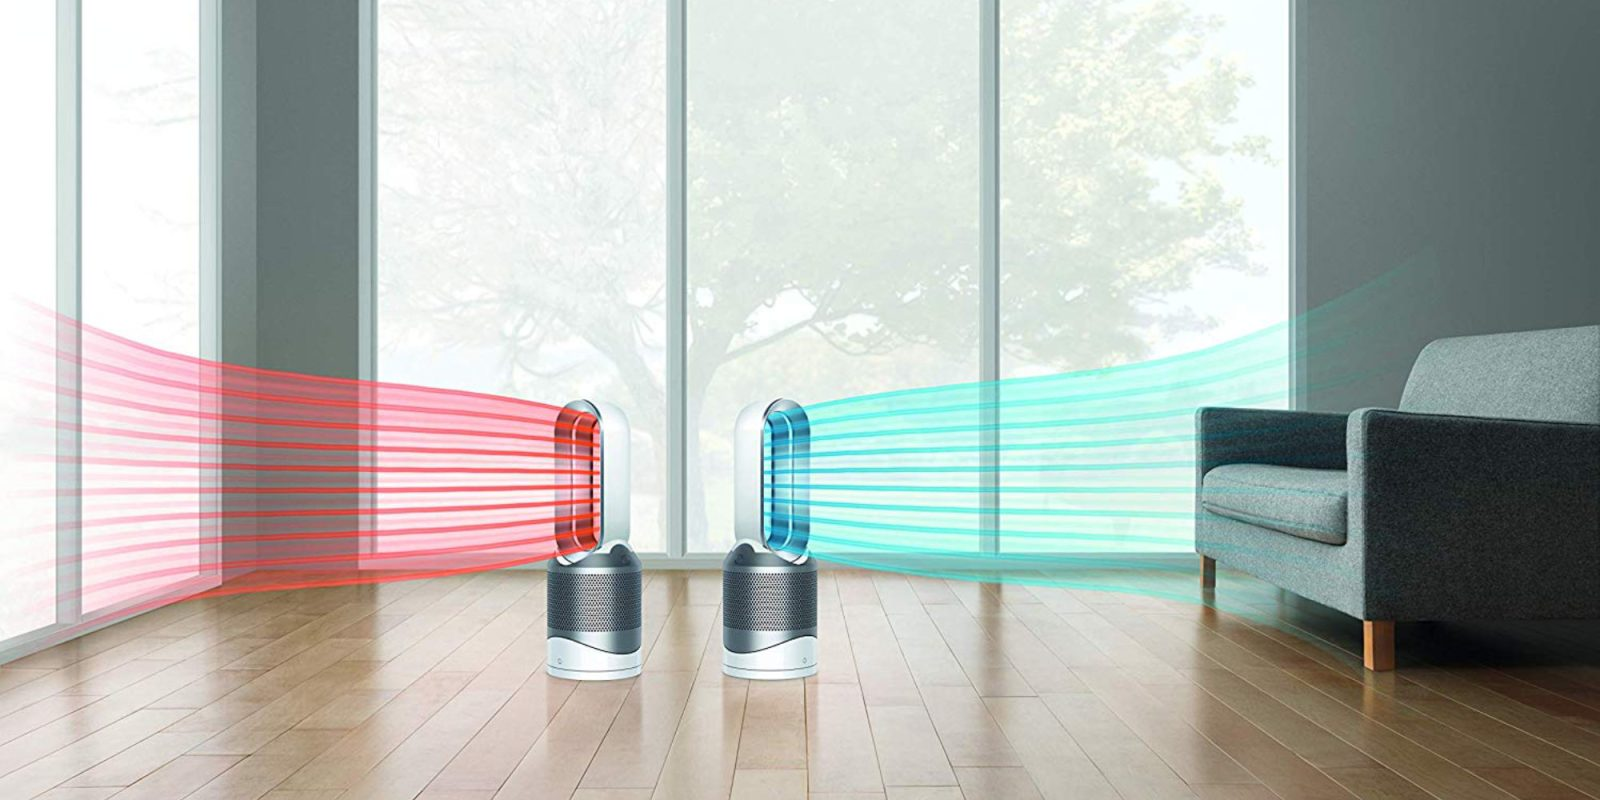 Dyson Sale: Pure Hot + Cool Fan $190.50 (Refurb, Orig. $500), more from $120